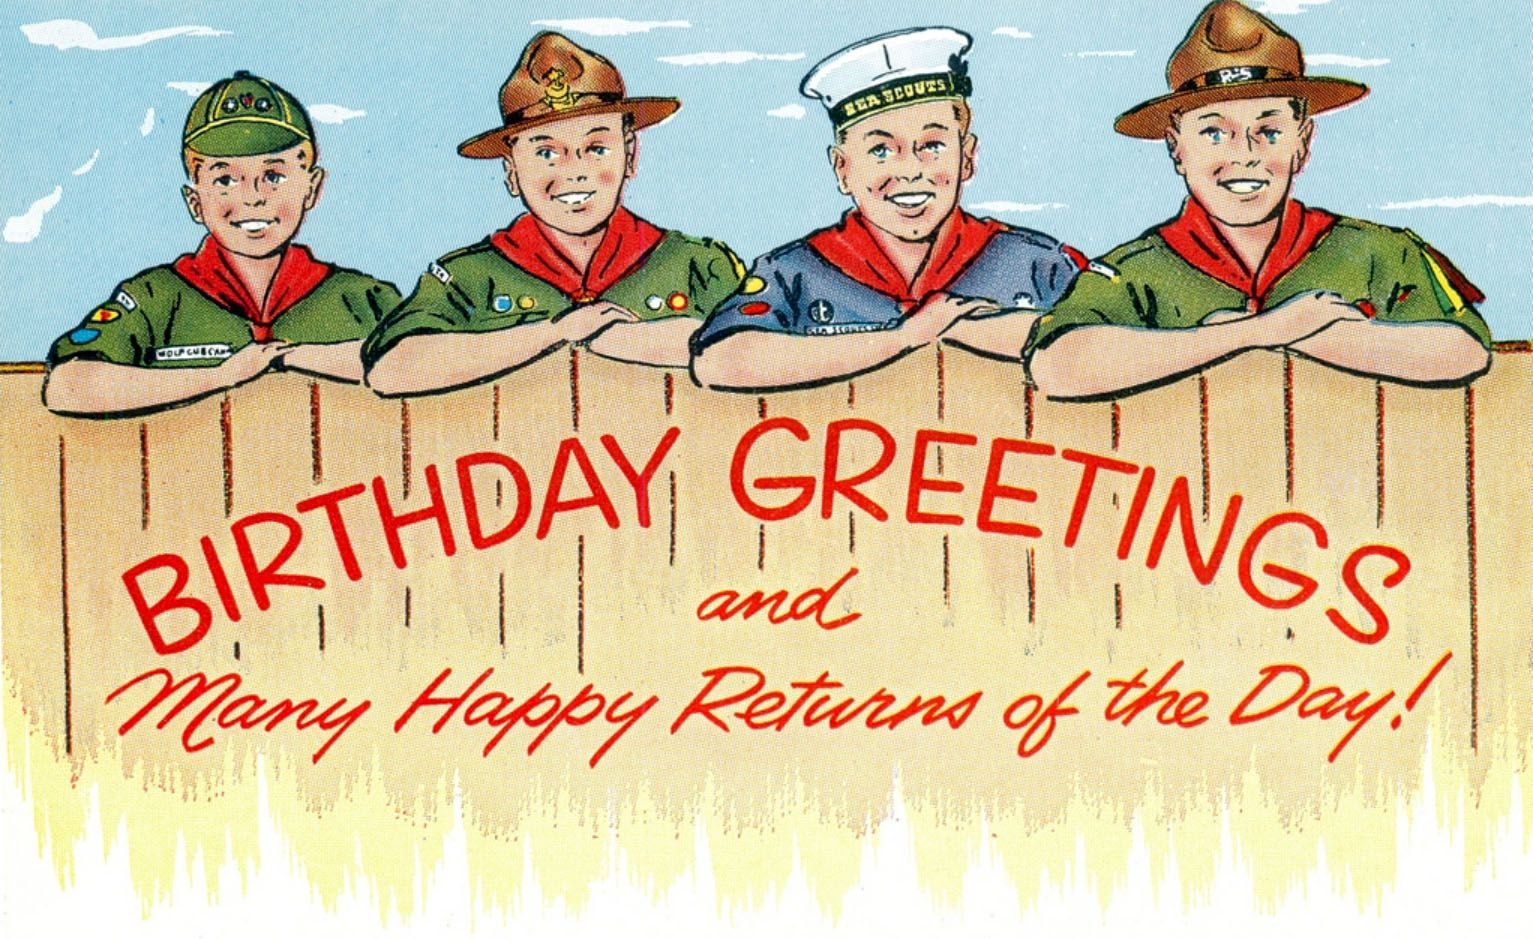 Baden Powell S Birthday Is February 22nd Birthday Wishes And Images Birthday Greetings Birthday Wishes